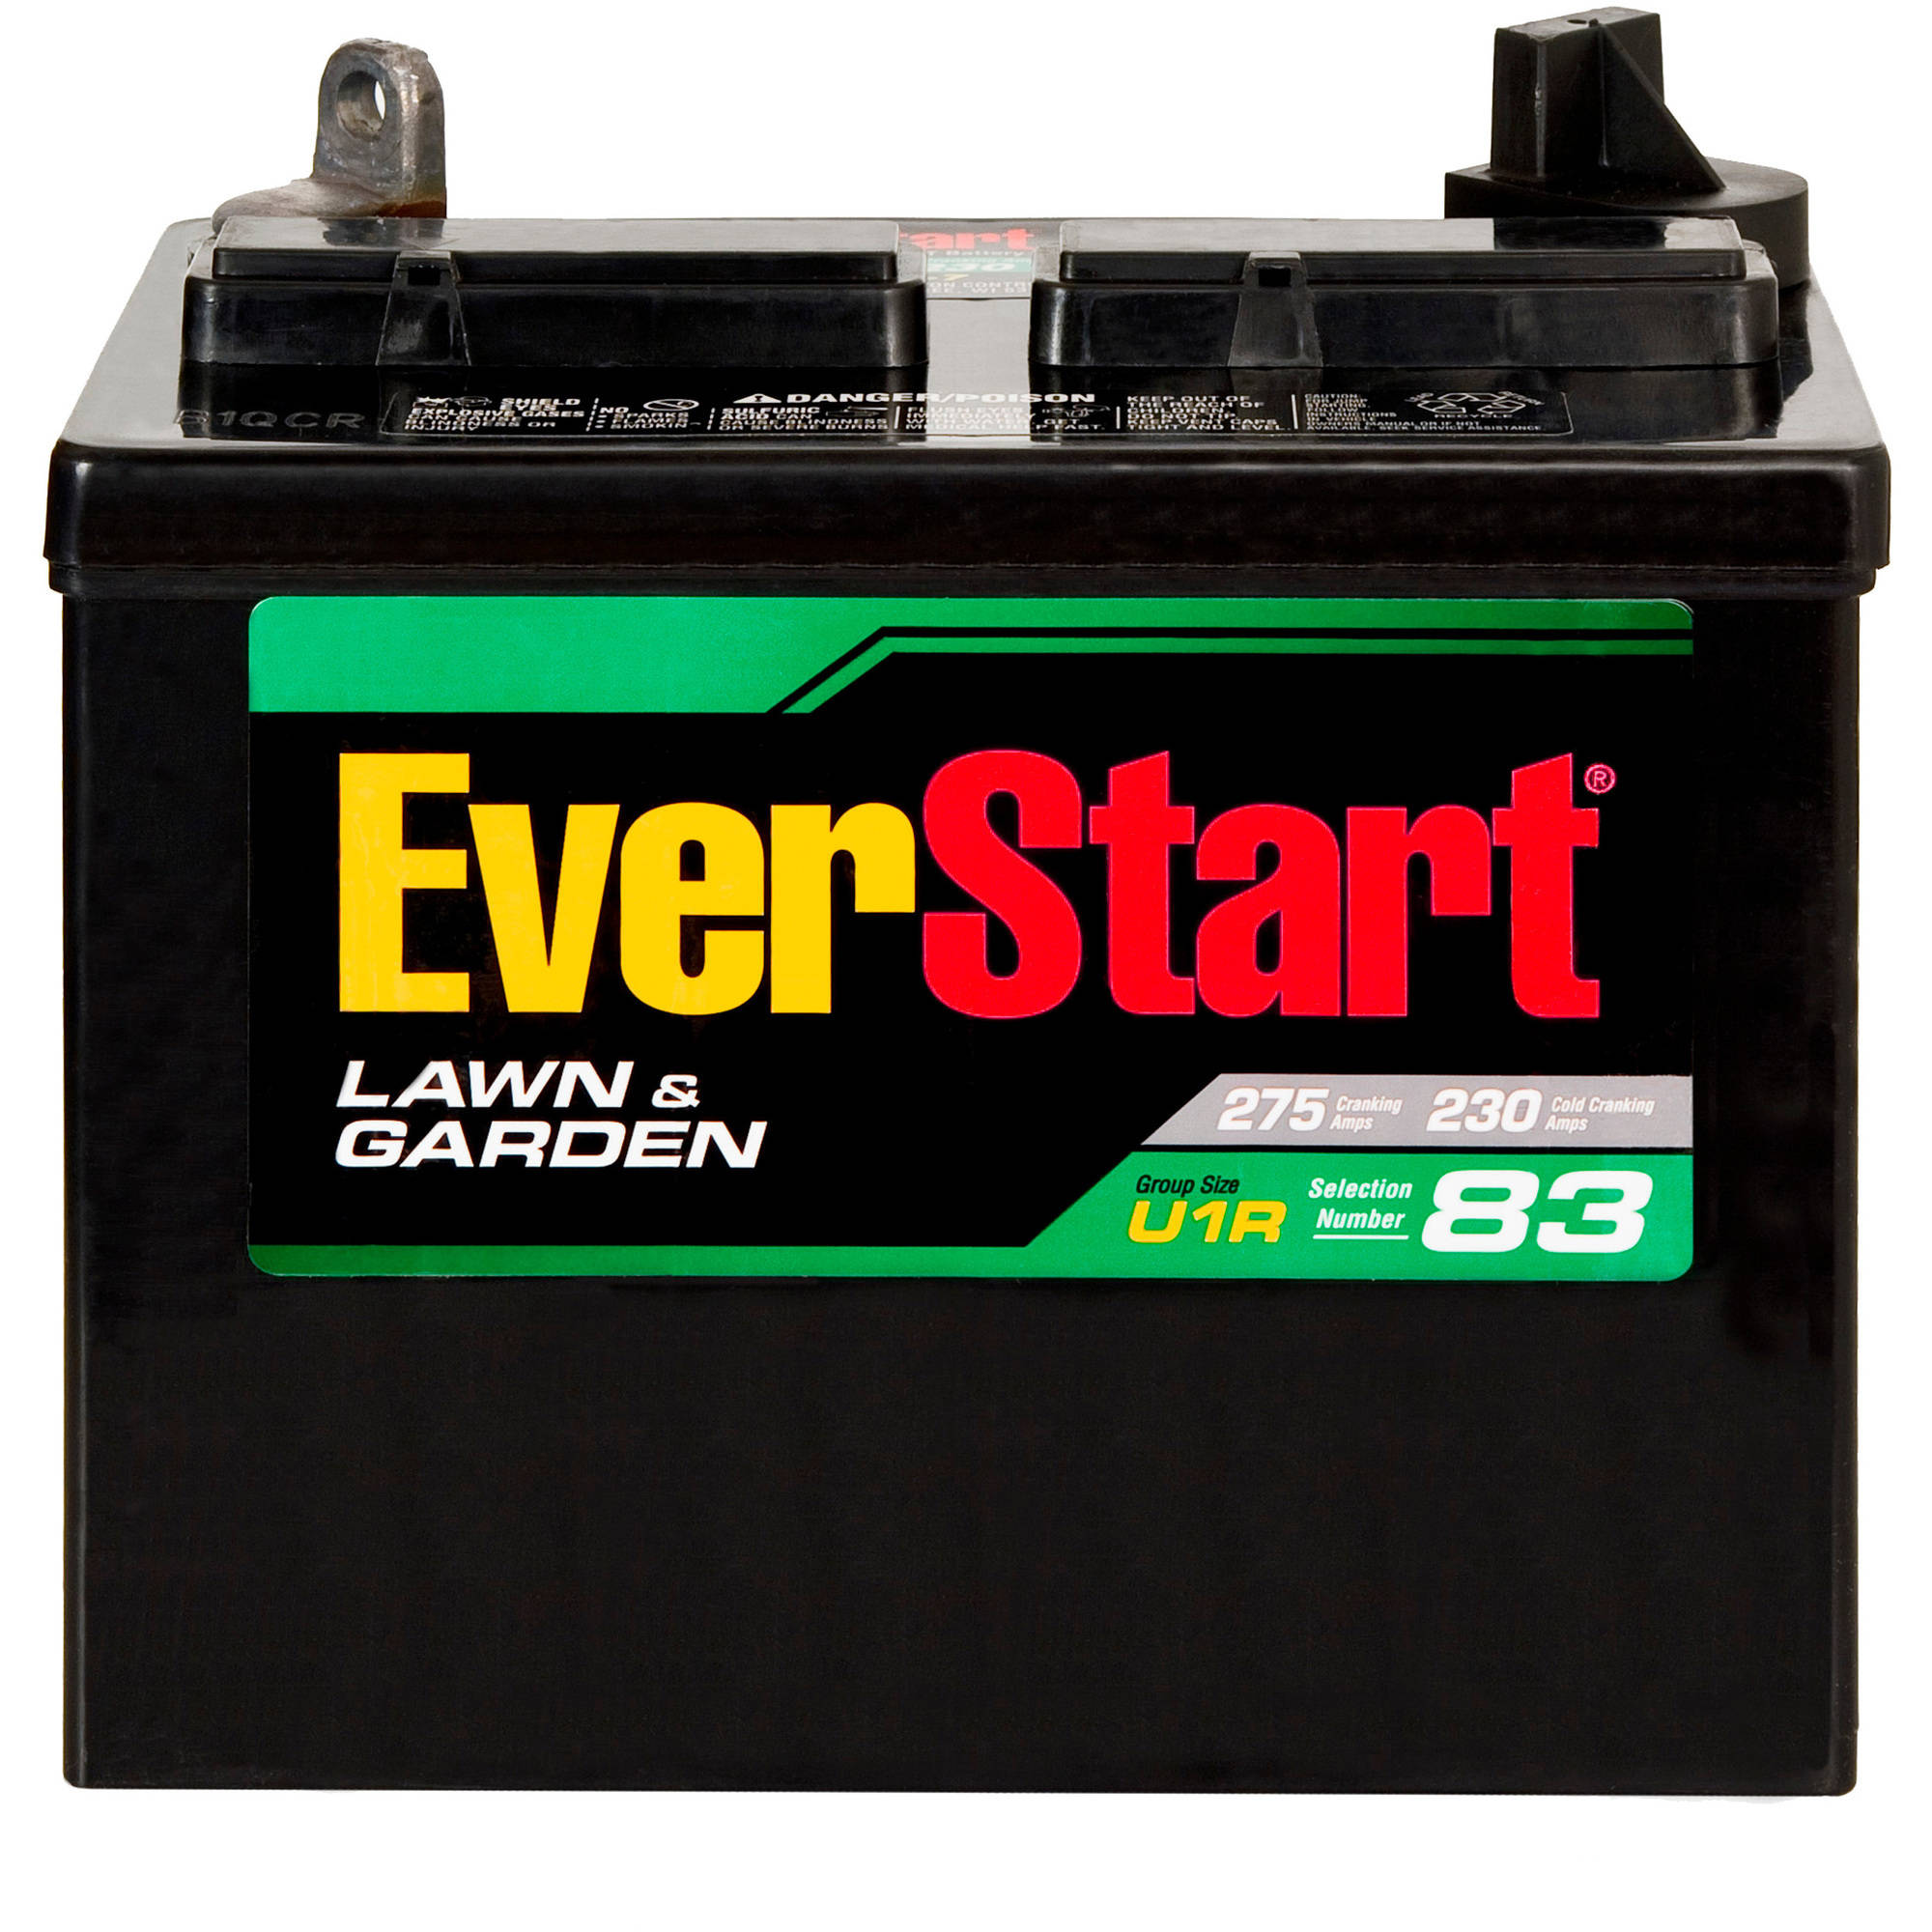 Beau EverStart Lawn U0026 Garden Battery, U1R